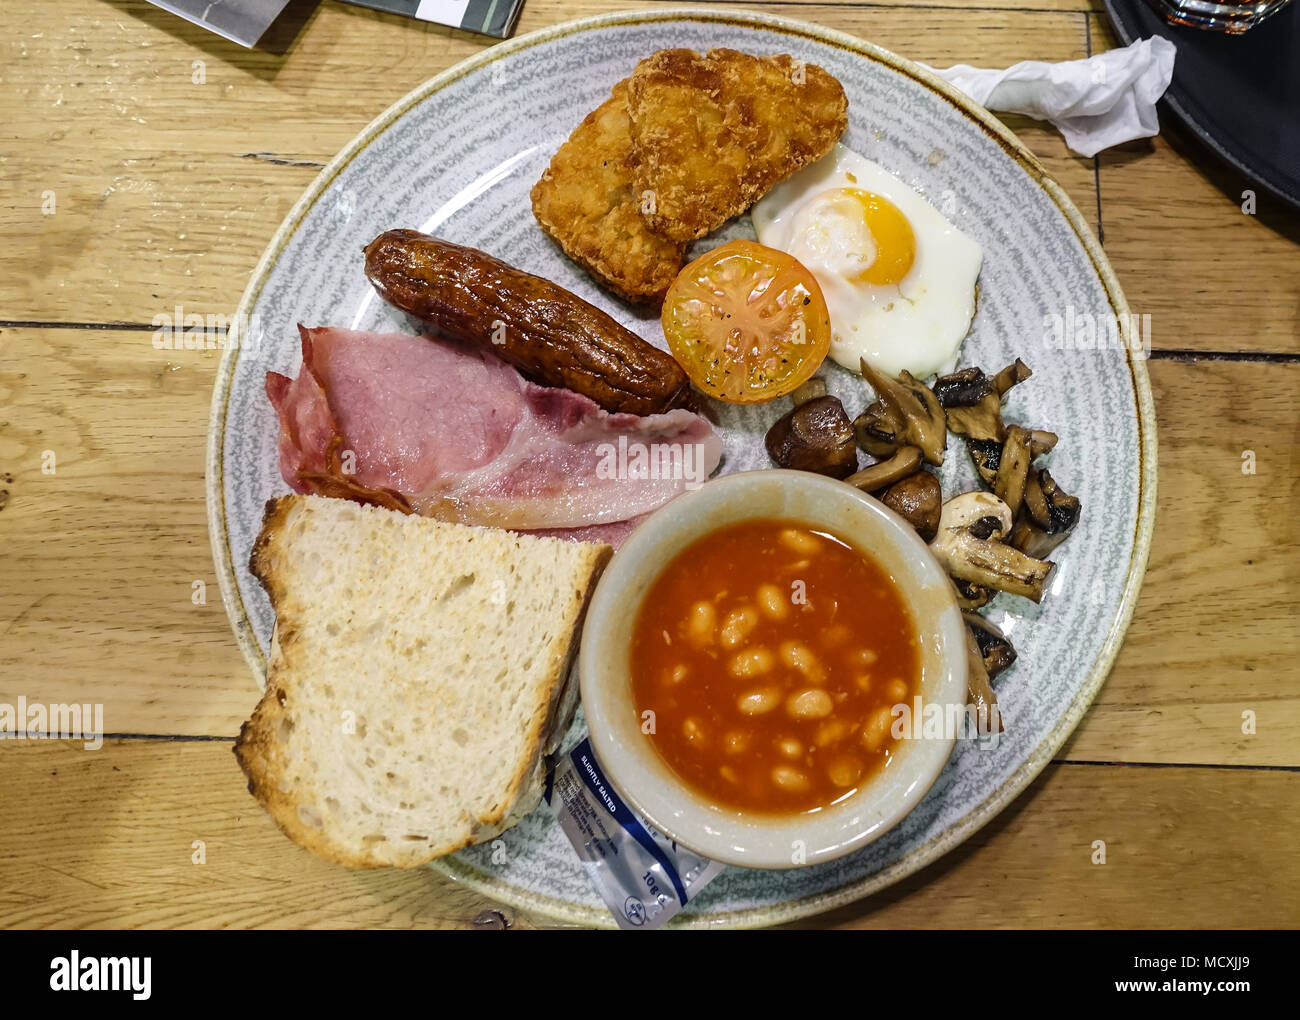 A view of a full English breakfast at a cafe with fried egg, sausage, bacon, fried mushrooms, hasb browns and baked beans. - Stock Image